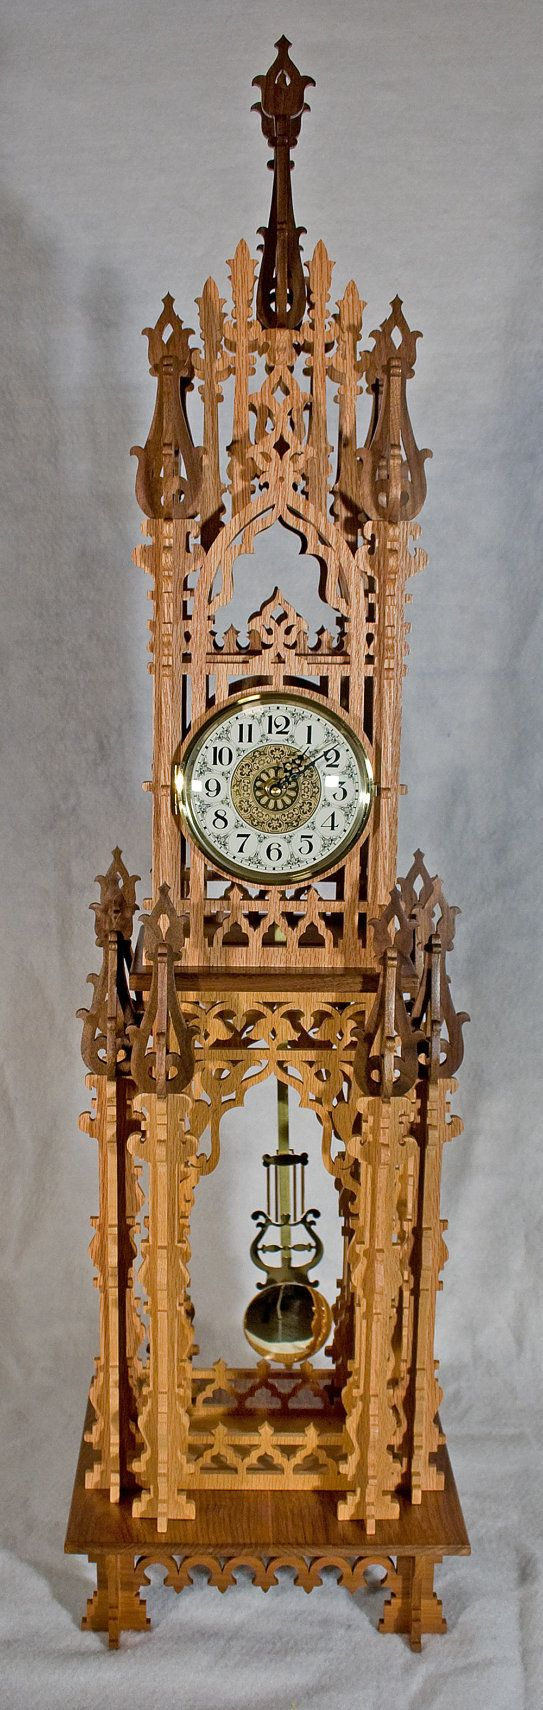 Decorative Fretwork Clock With Westminster Chime Clock